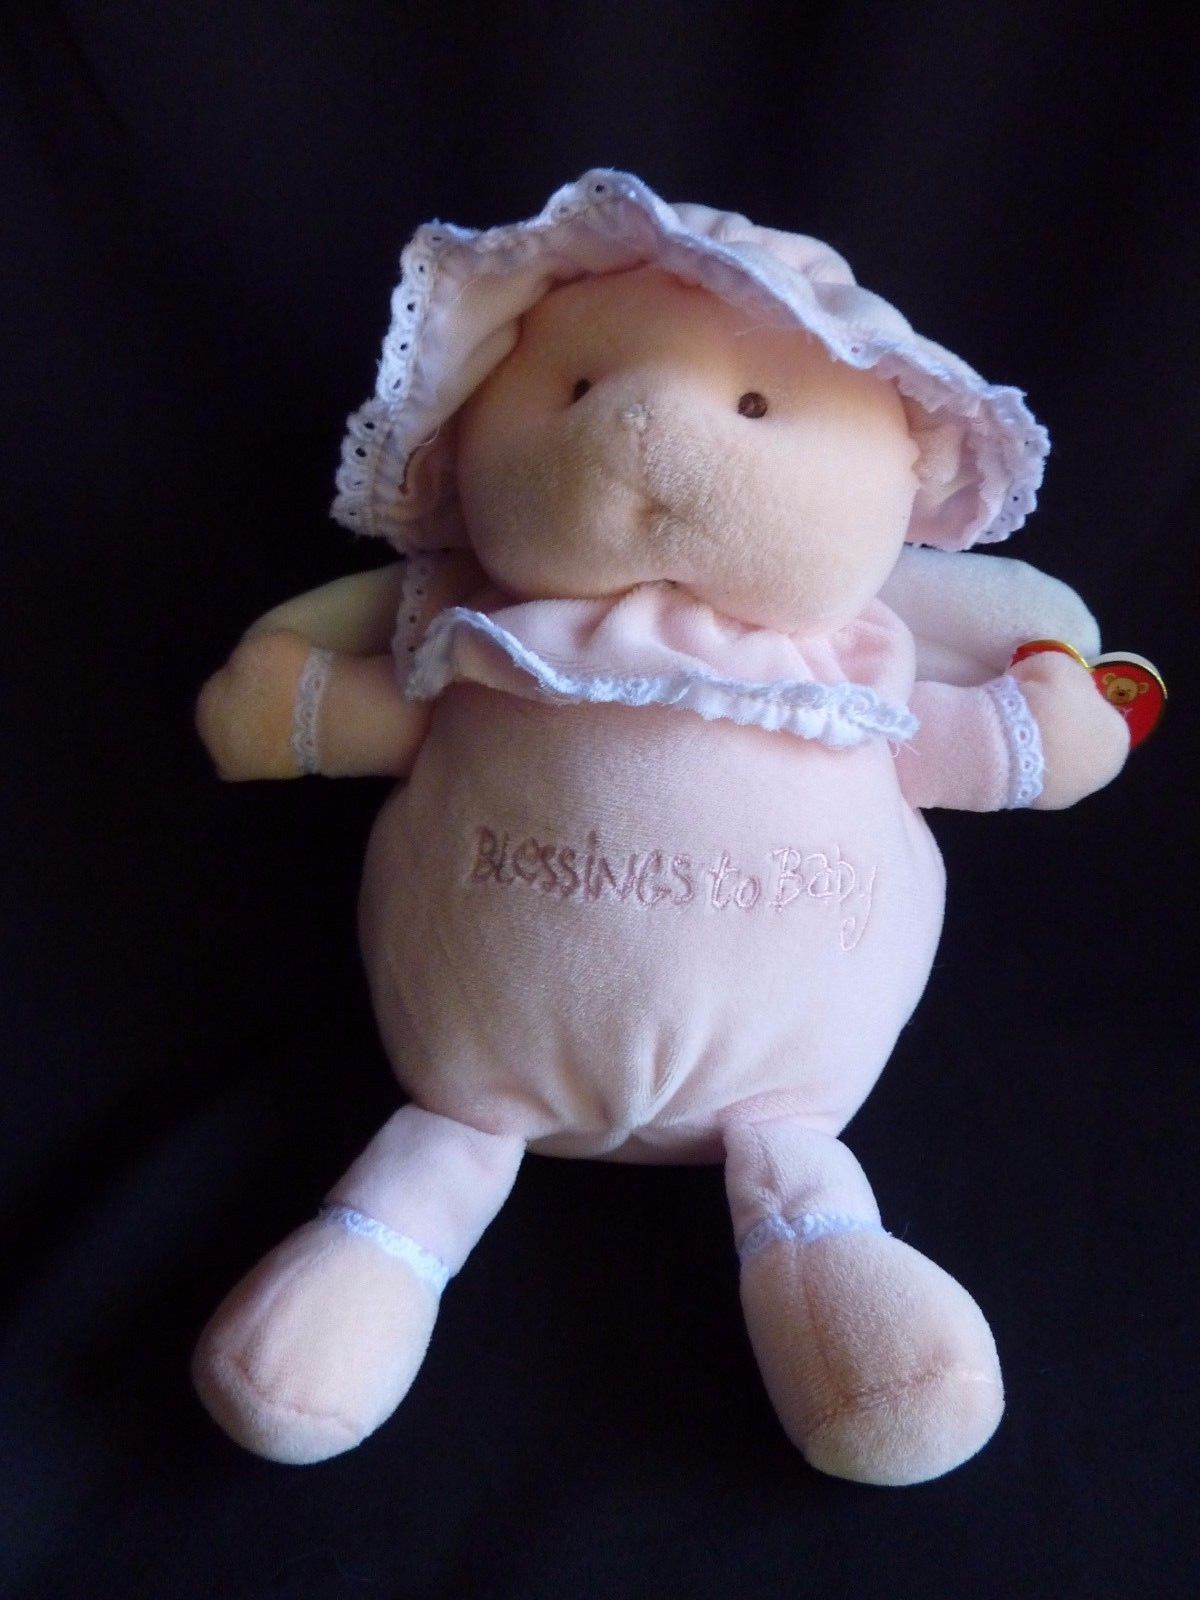 Primary image for Ty Pluffies BLESSINGS TO BABY *Pink Baby Girl 2004 Plush Pluffy Beanie Sewn Eyes